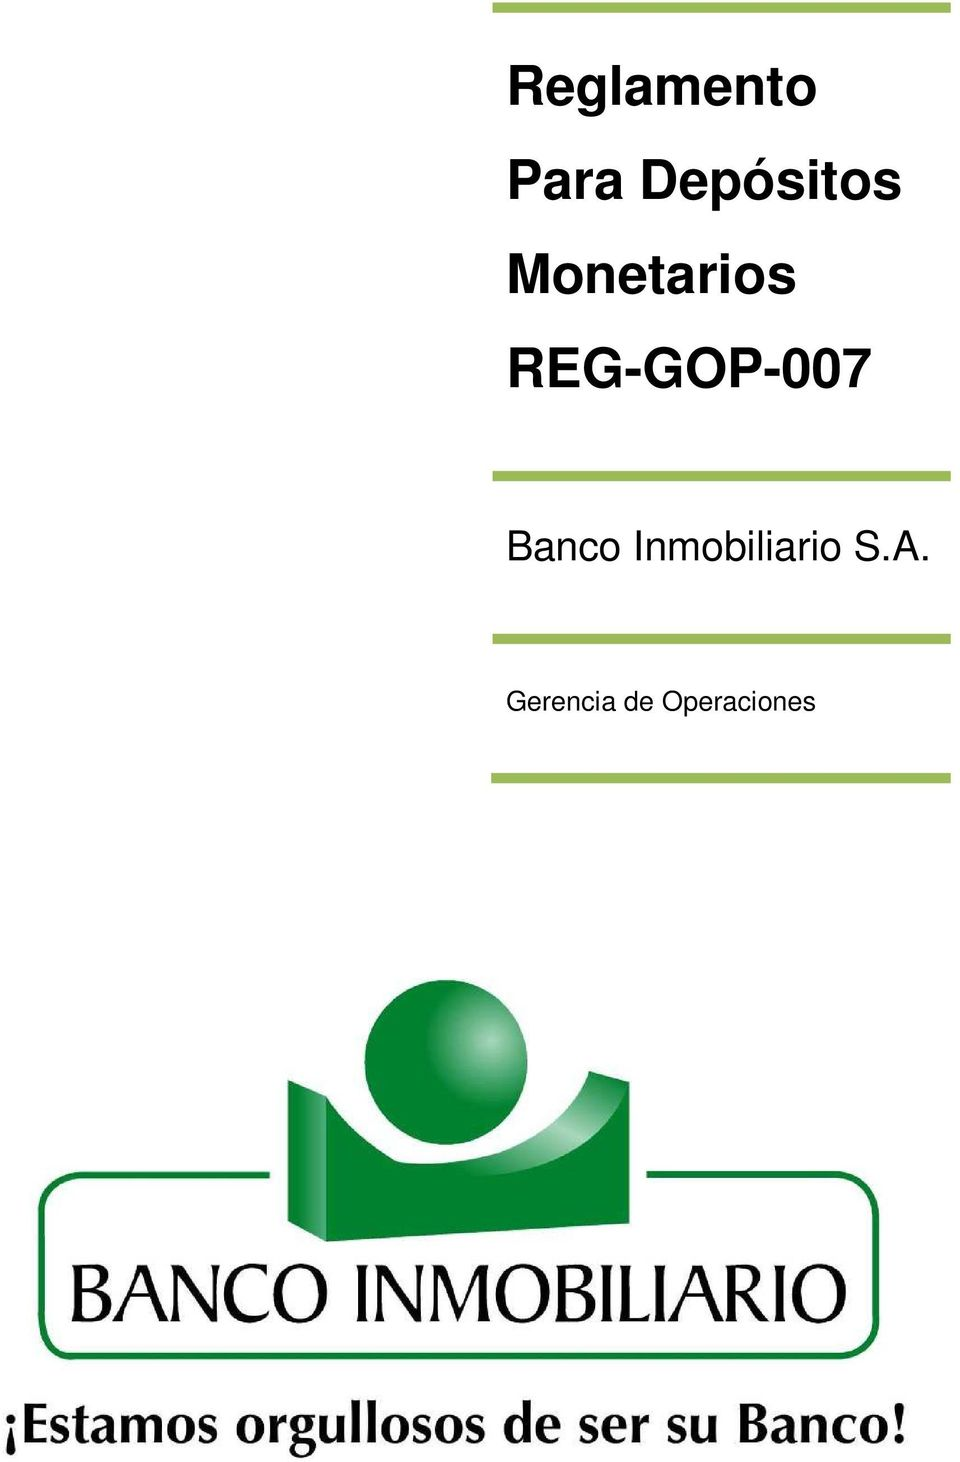 REG-GOP-007 Banco